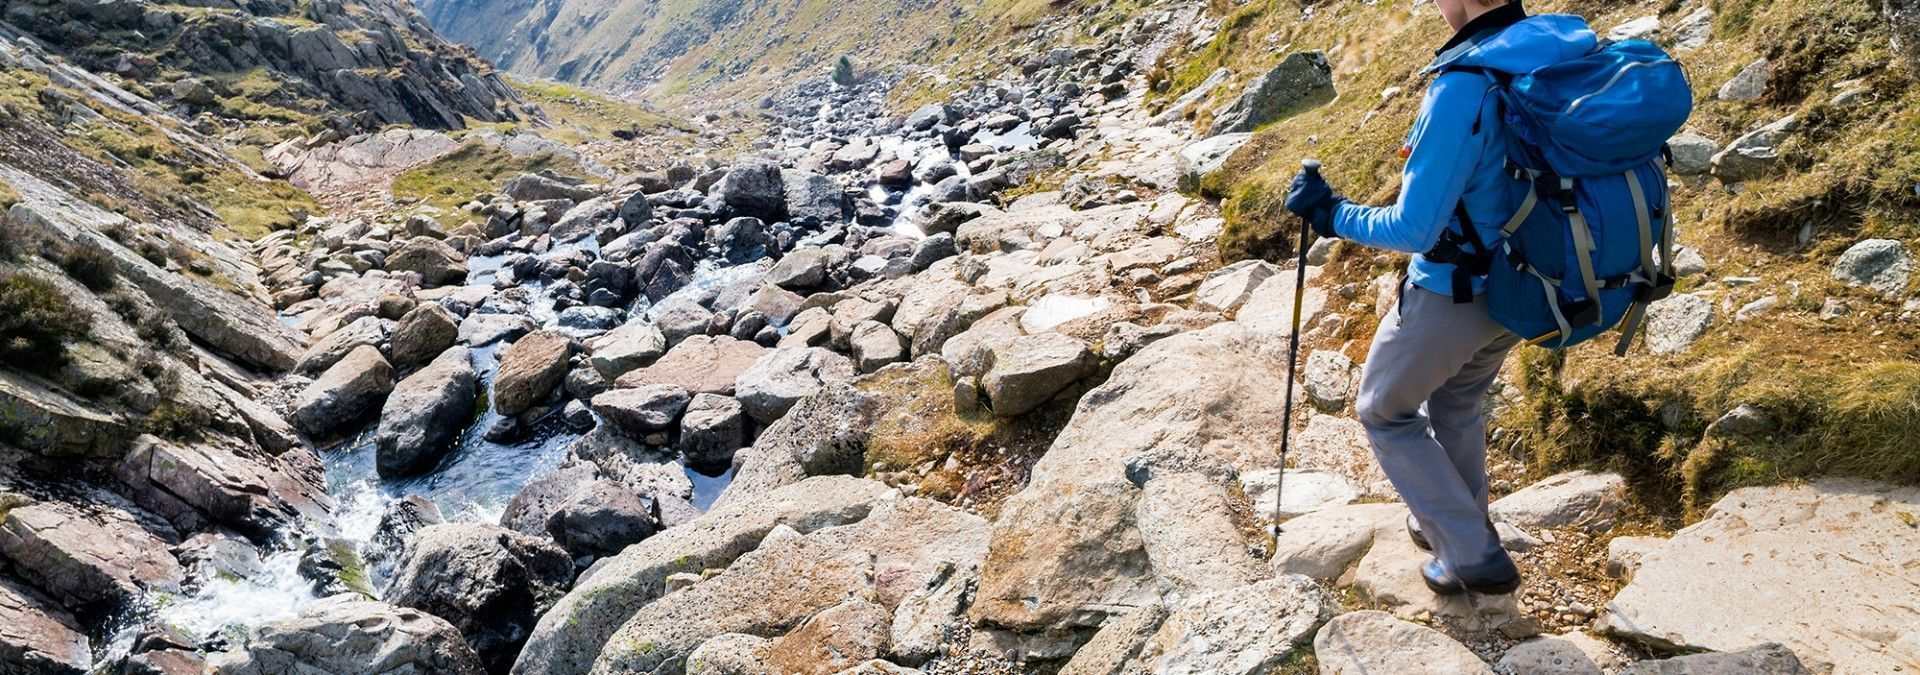 Trekking_with_poles_over_rocks_Lake_District.jpg